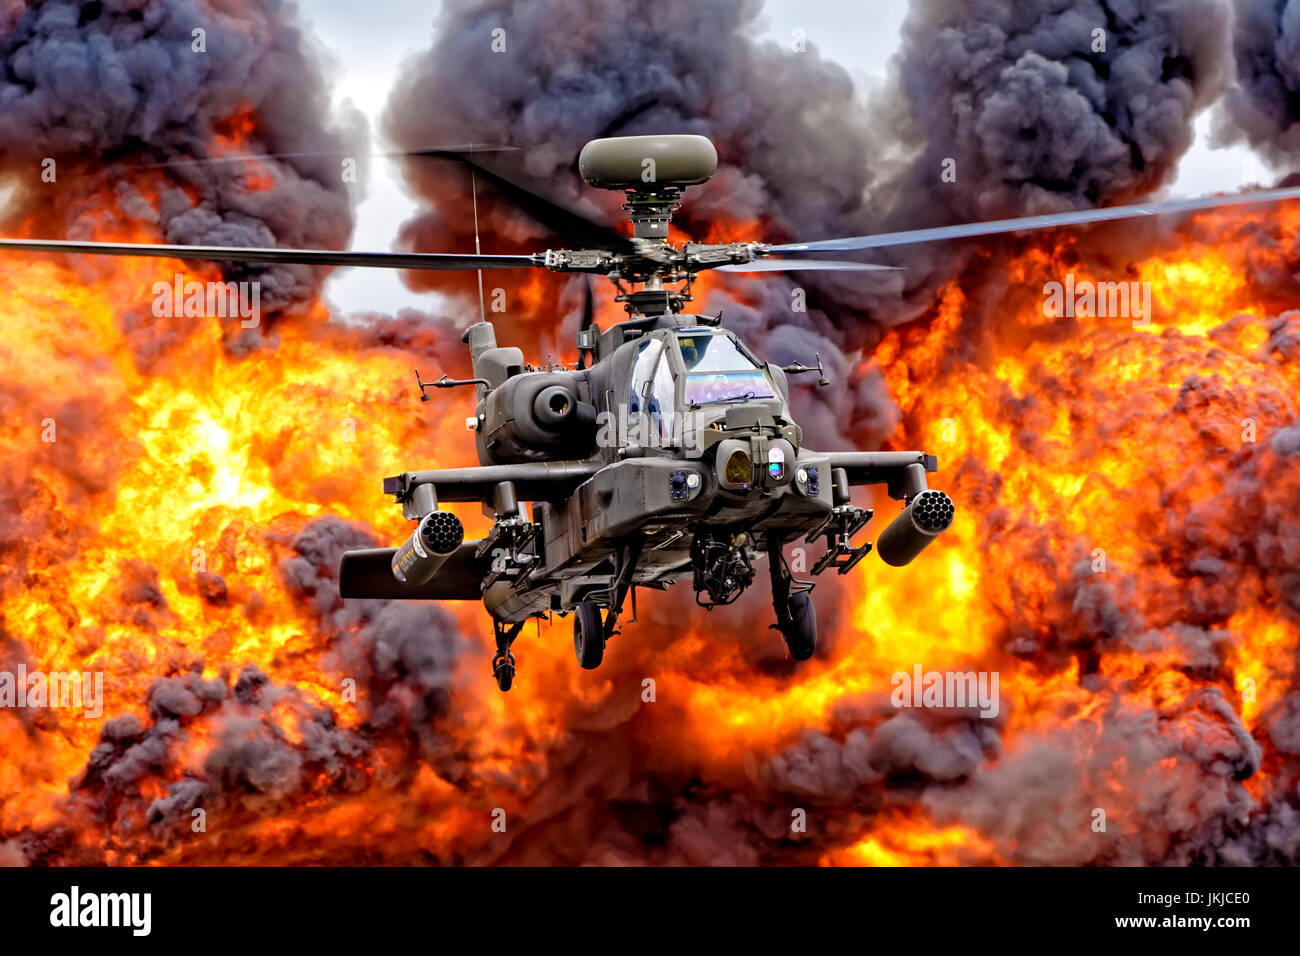 British Army Air Corps AgustaWestland Apache AH.1 Attack Helicopter - Stock Image